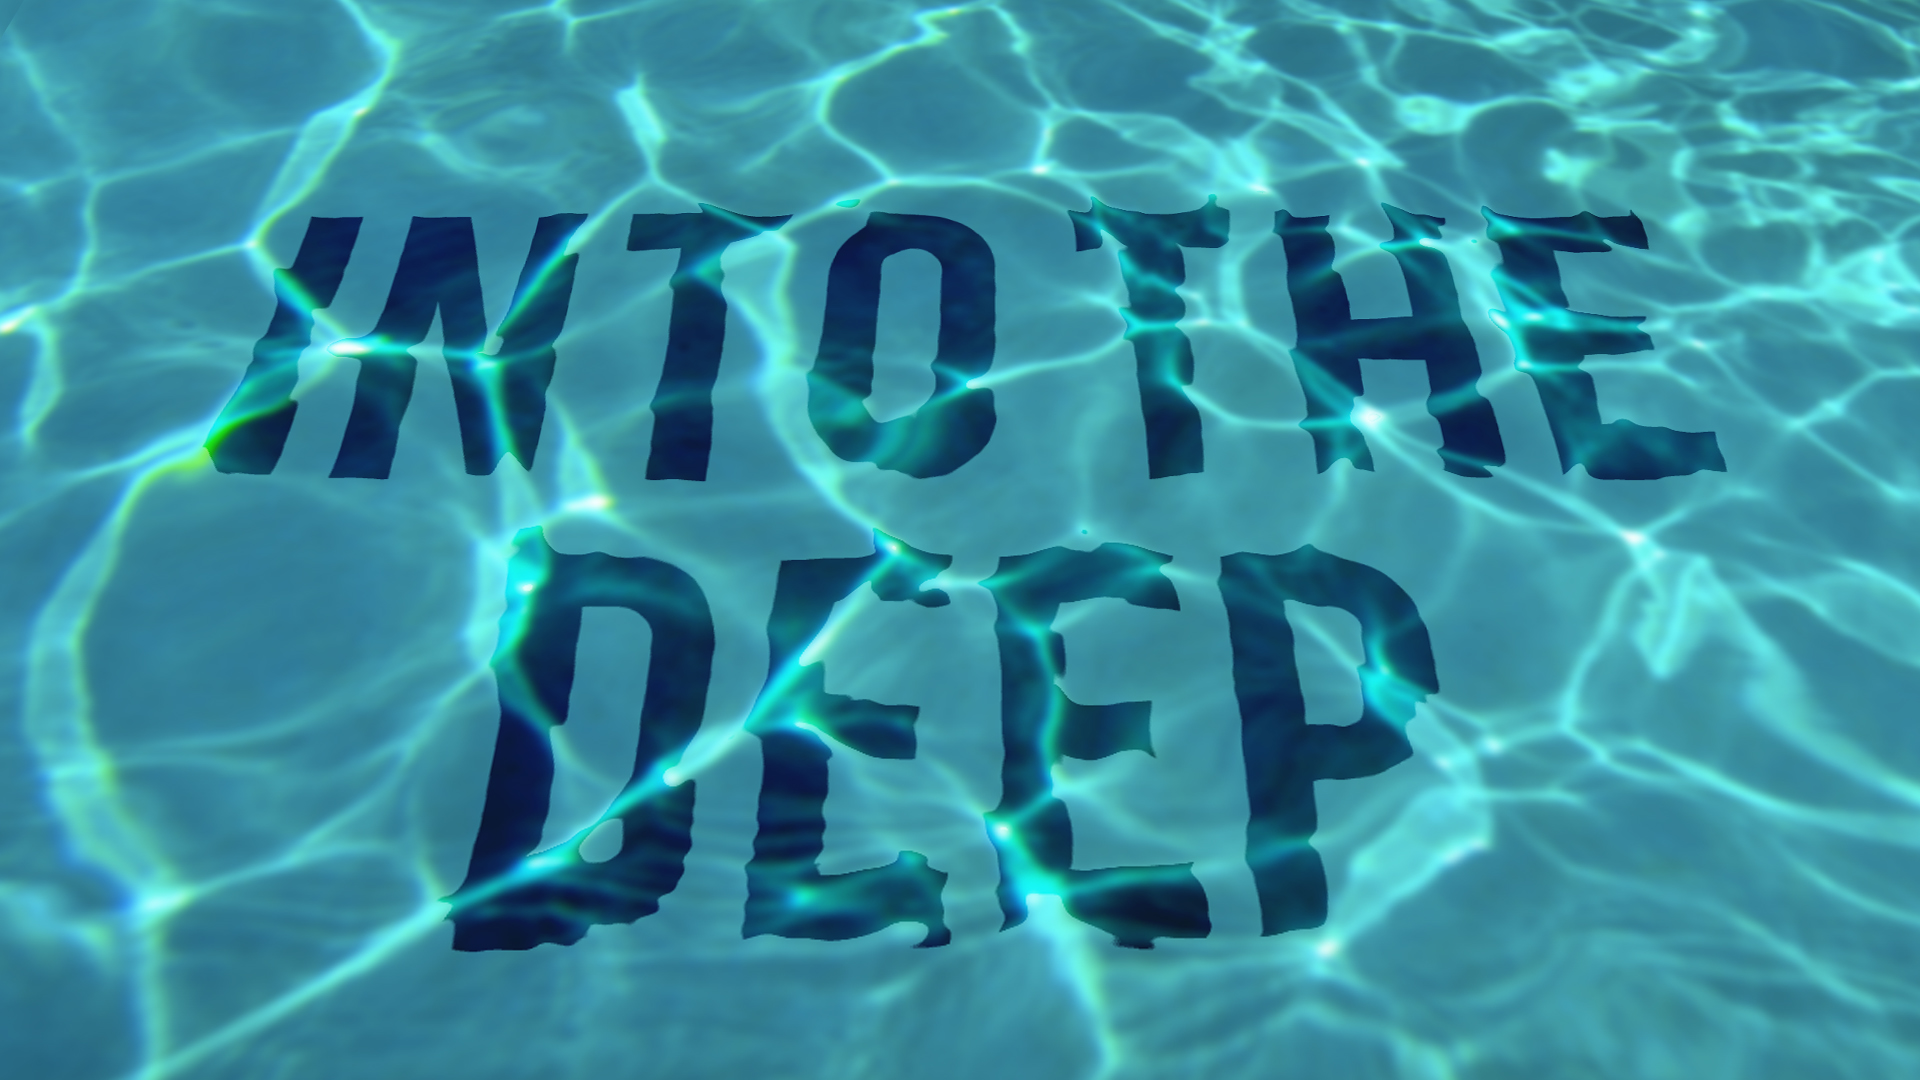 Into the deep.jpg